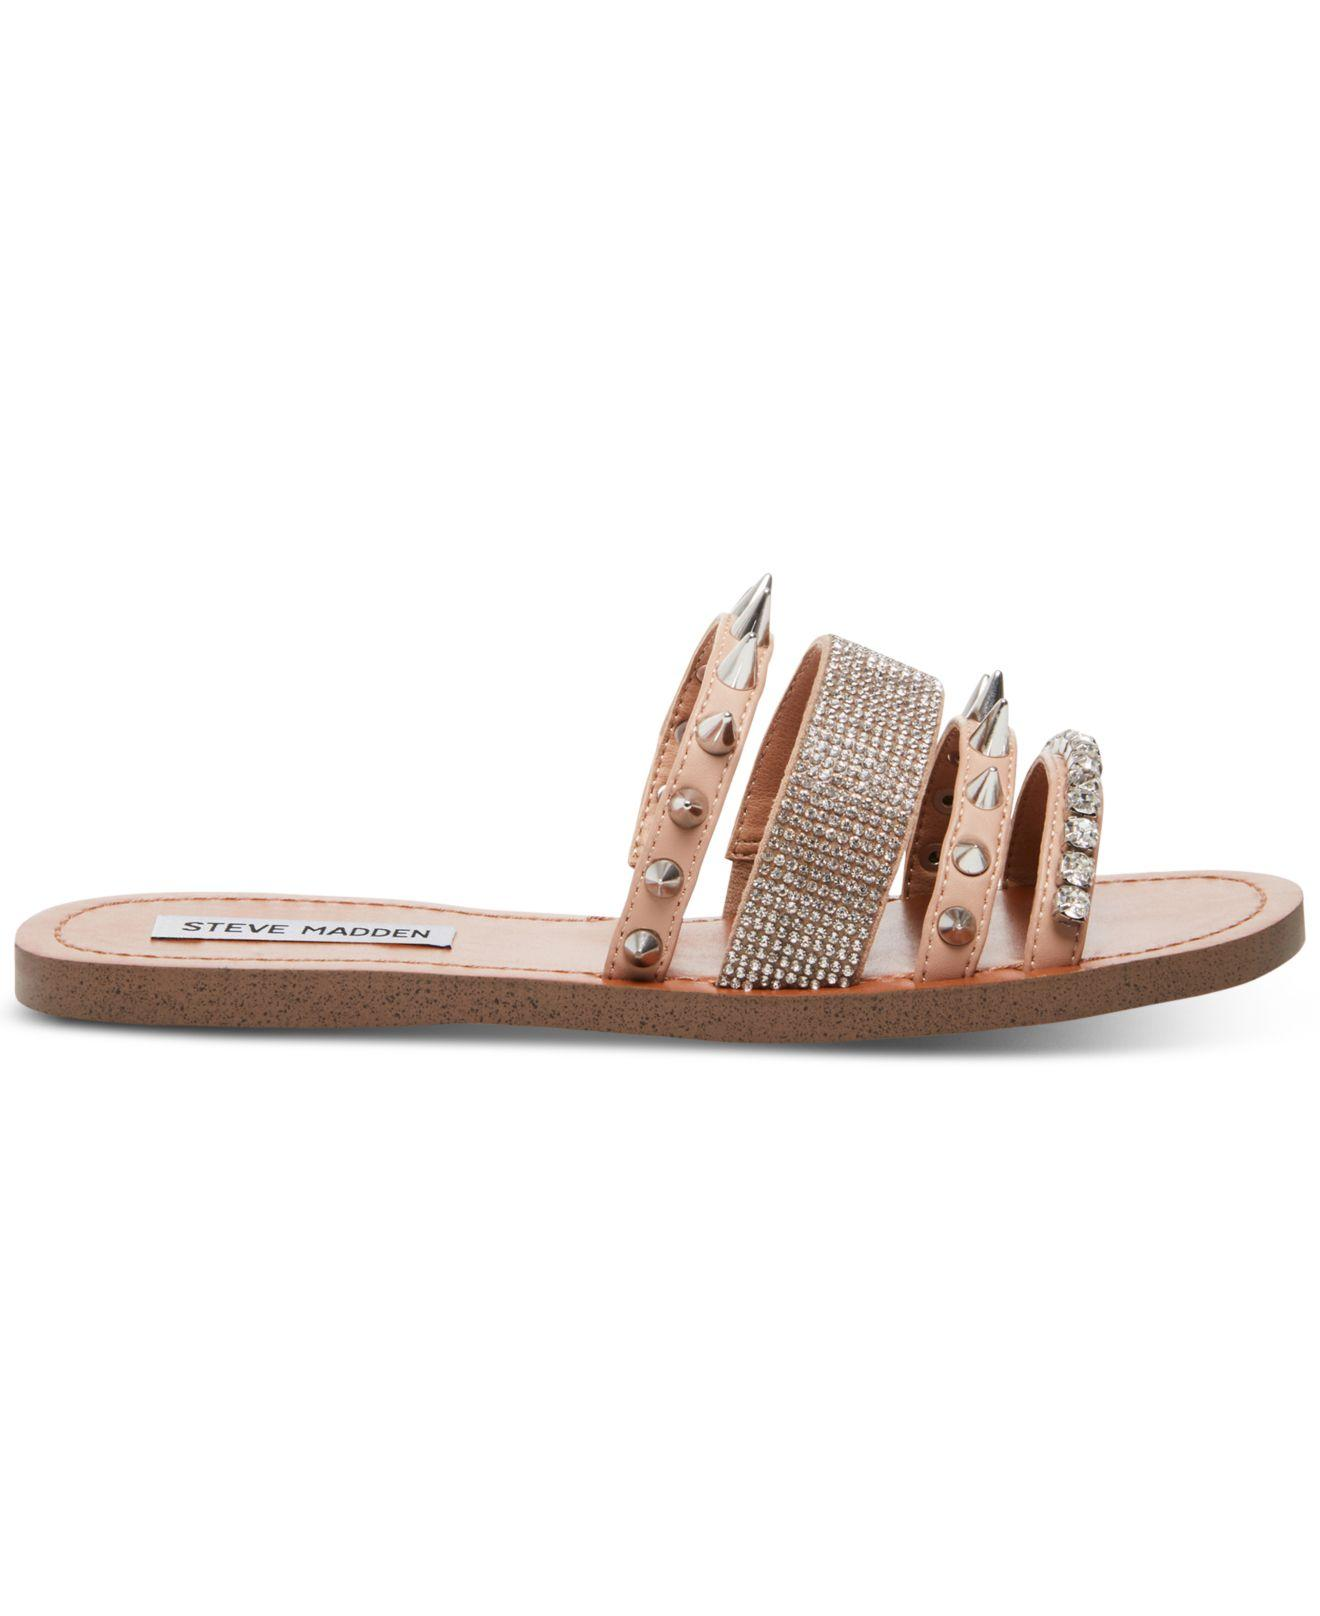 bf9d43ae8131d Steve Madden Lindy Slip-on Sandals - Lyst